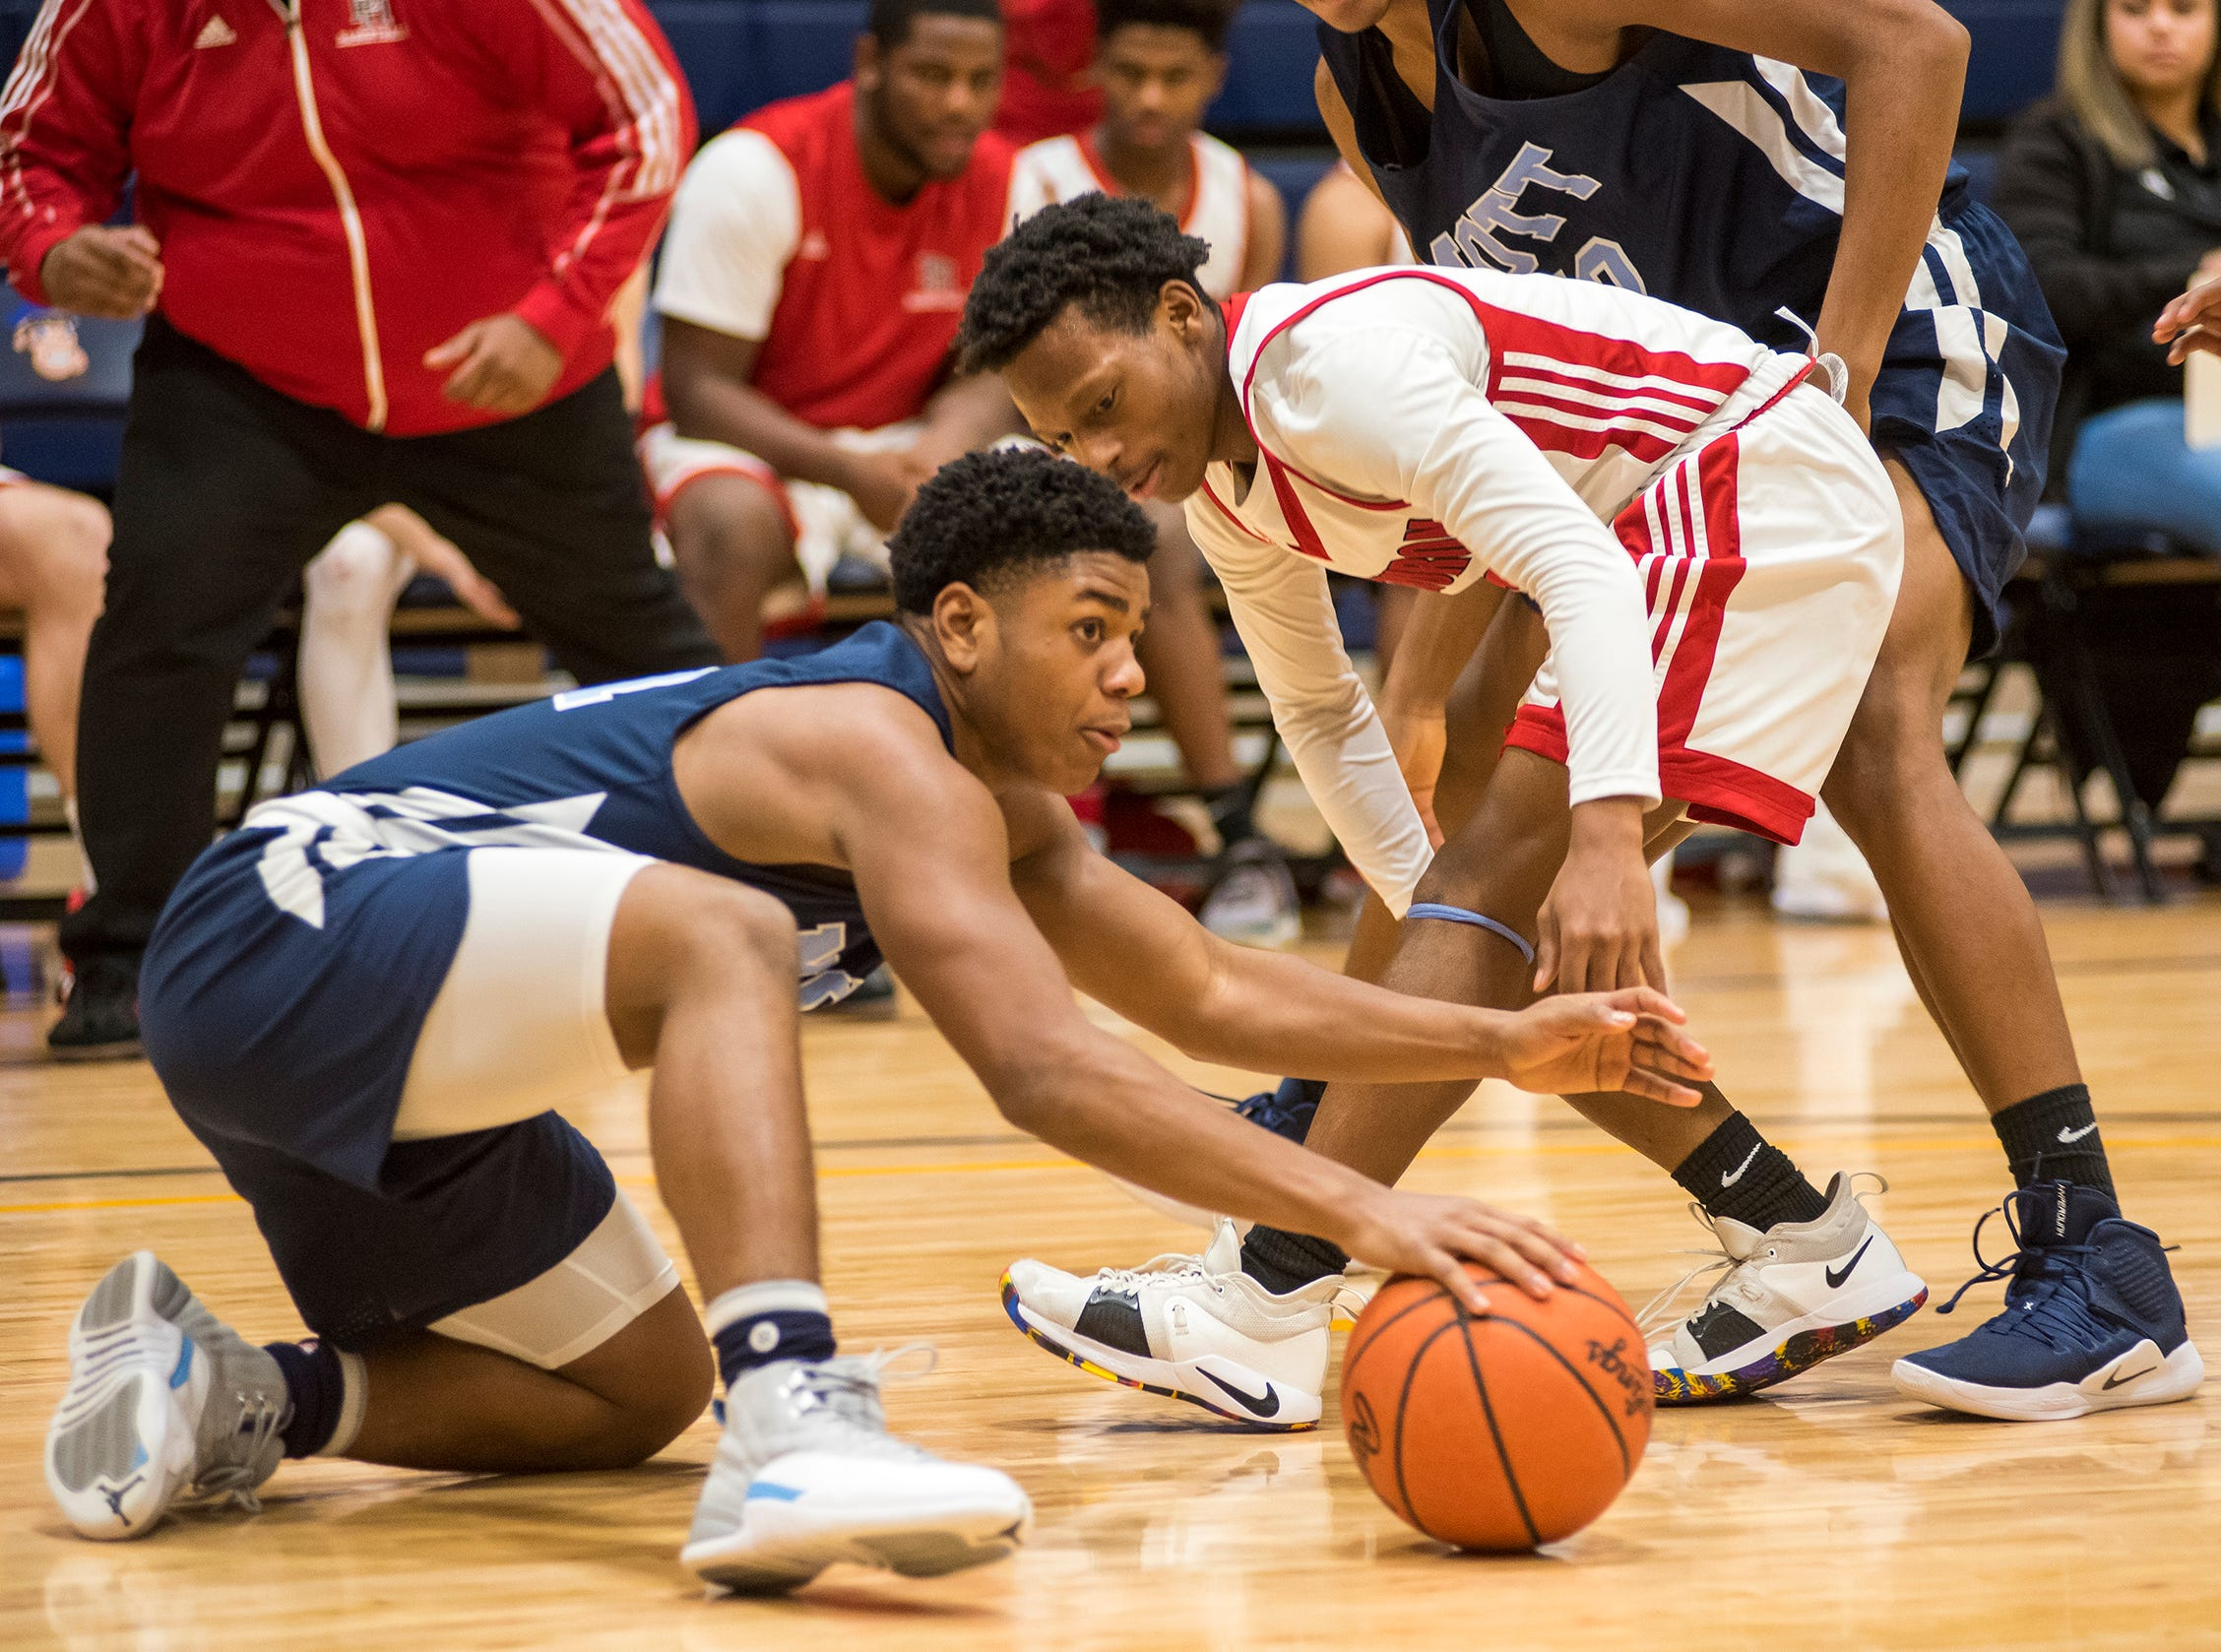 Port Huron High School guard Treshaun Lee (right) and Waterford Mott High School guard Keimonee Fields both reach for a loose ball during their SC4 Holiday Basketball Showcase game Saturday, Dec. 29, 2018 at the SC4 Fieldhouse.